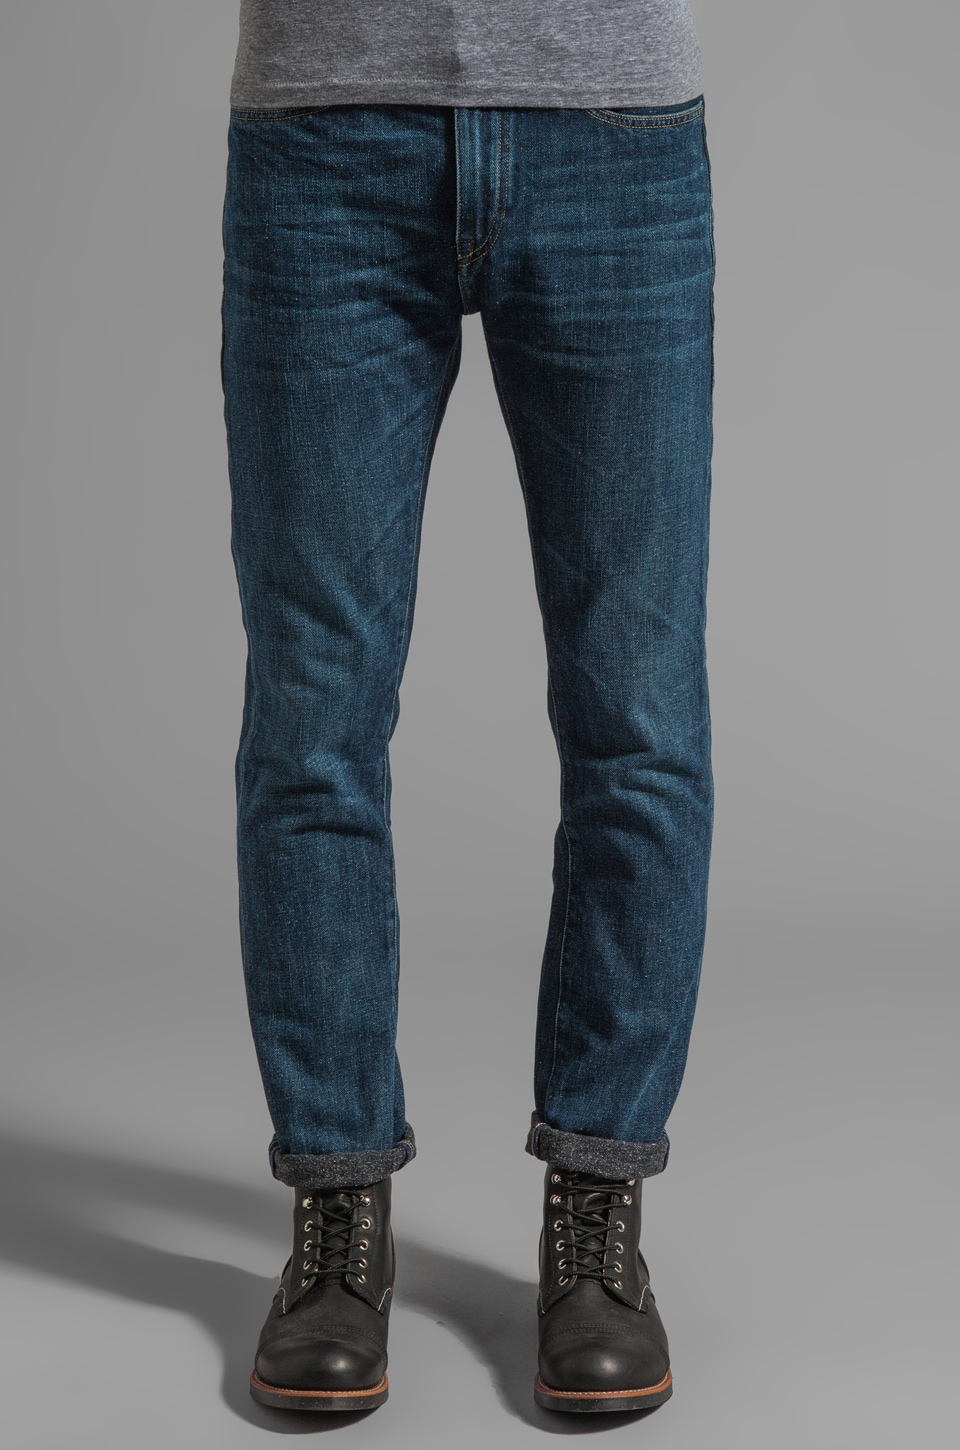 LEVI'S: Made & Crafted Tack Slim in Shattered